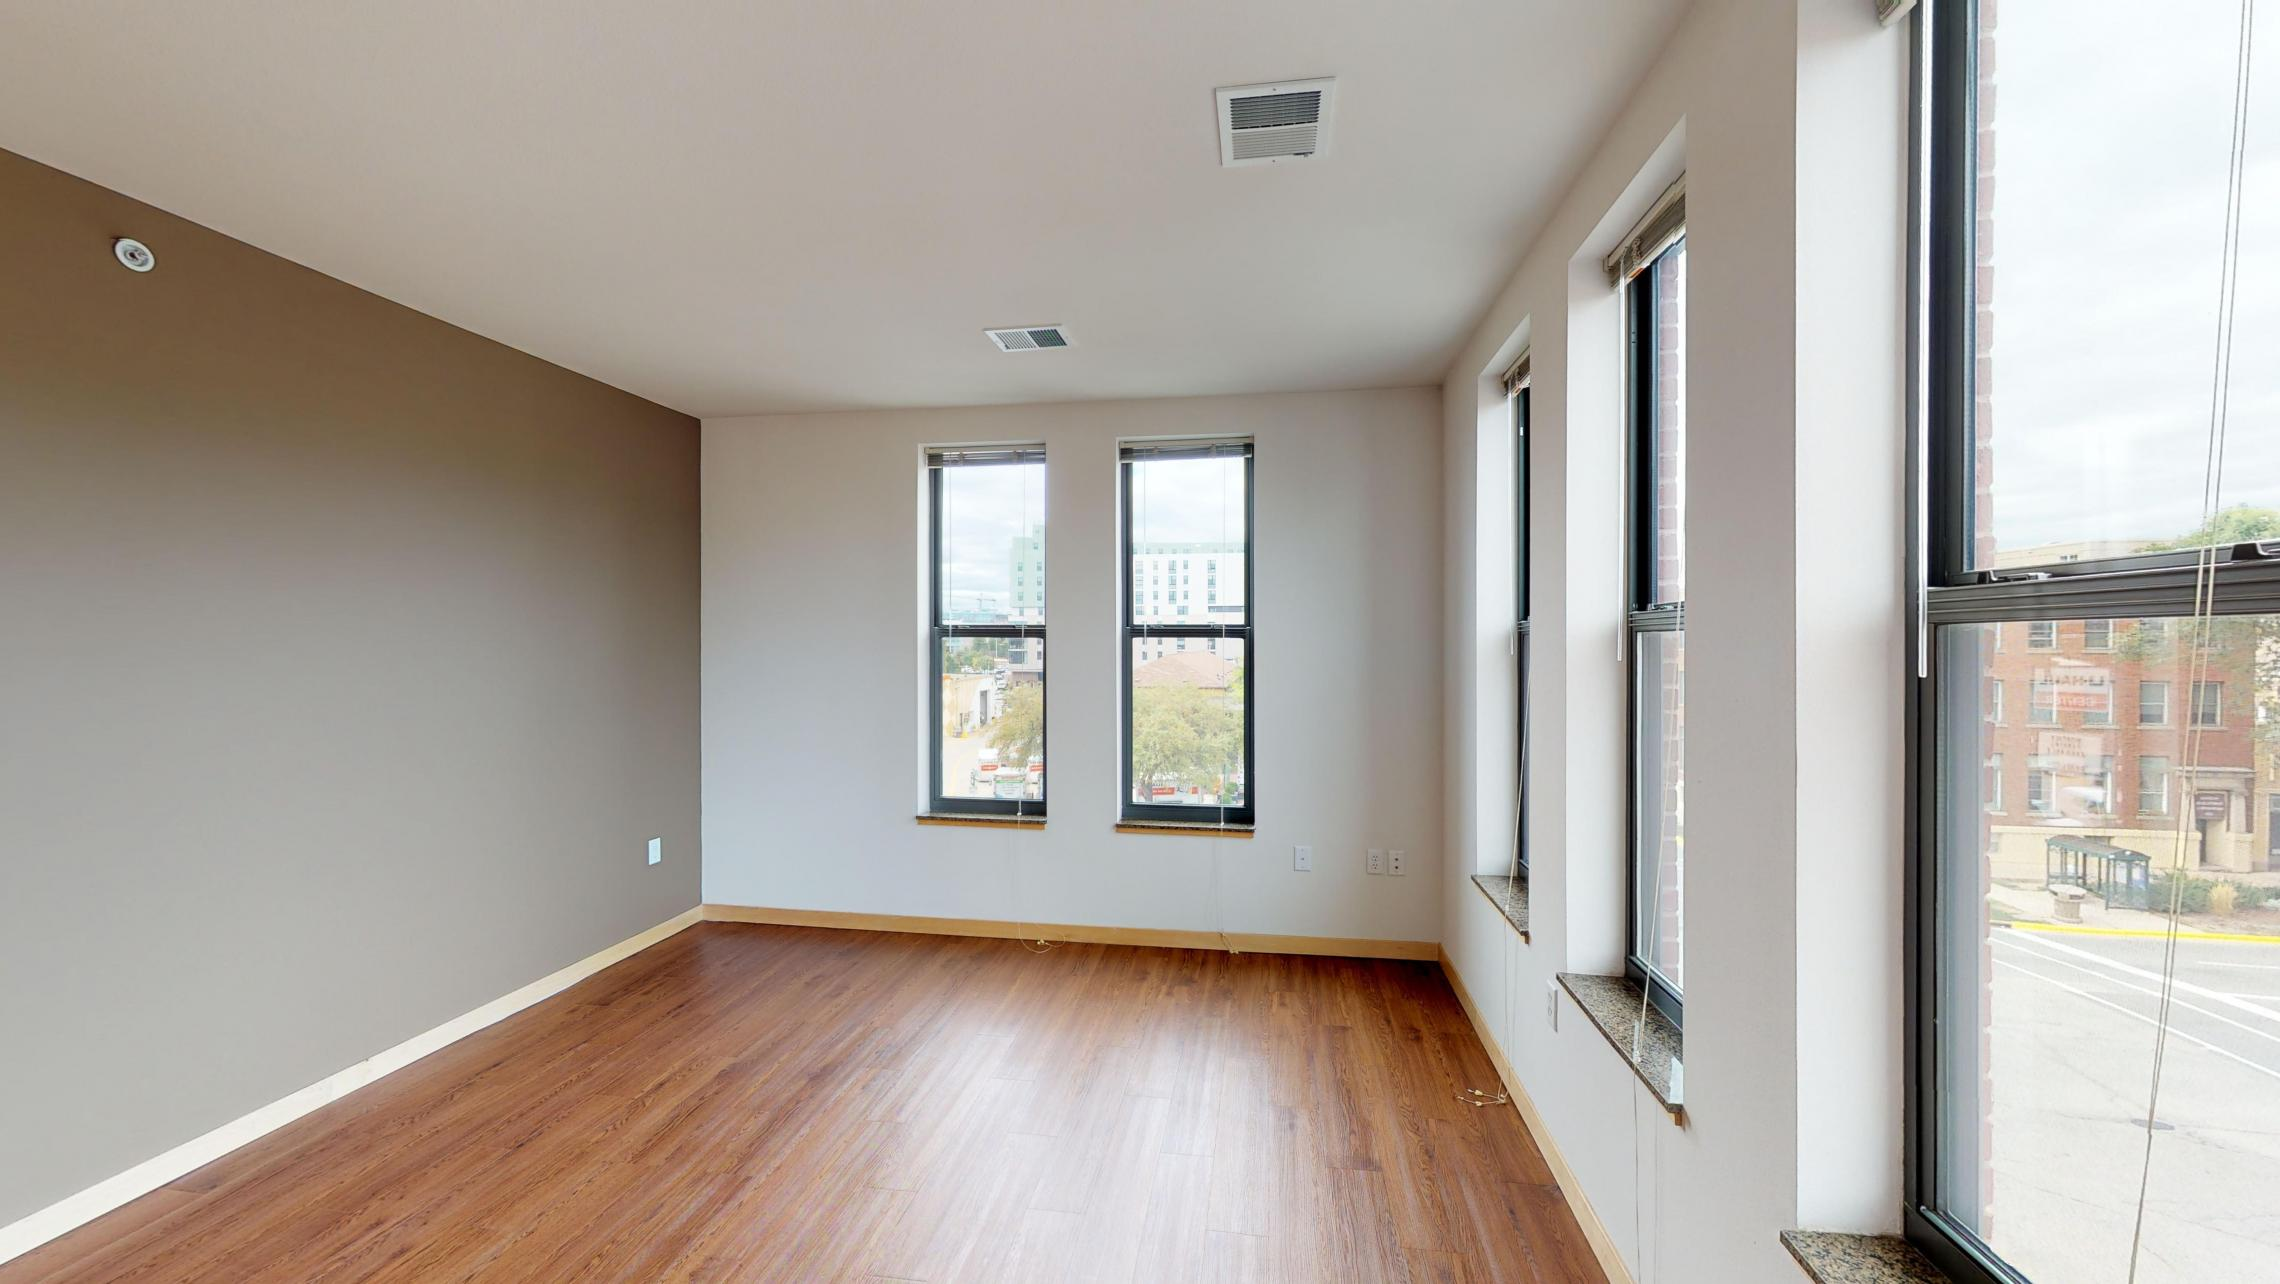 The-Depot-Apartments-Downtown-Madison-Lifestyle-Large-Closet-Bike-Storage-Washington-Ave-Style-Design-Balcony-Apartment-1-307-One-Bedroom